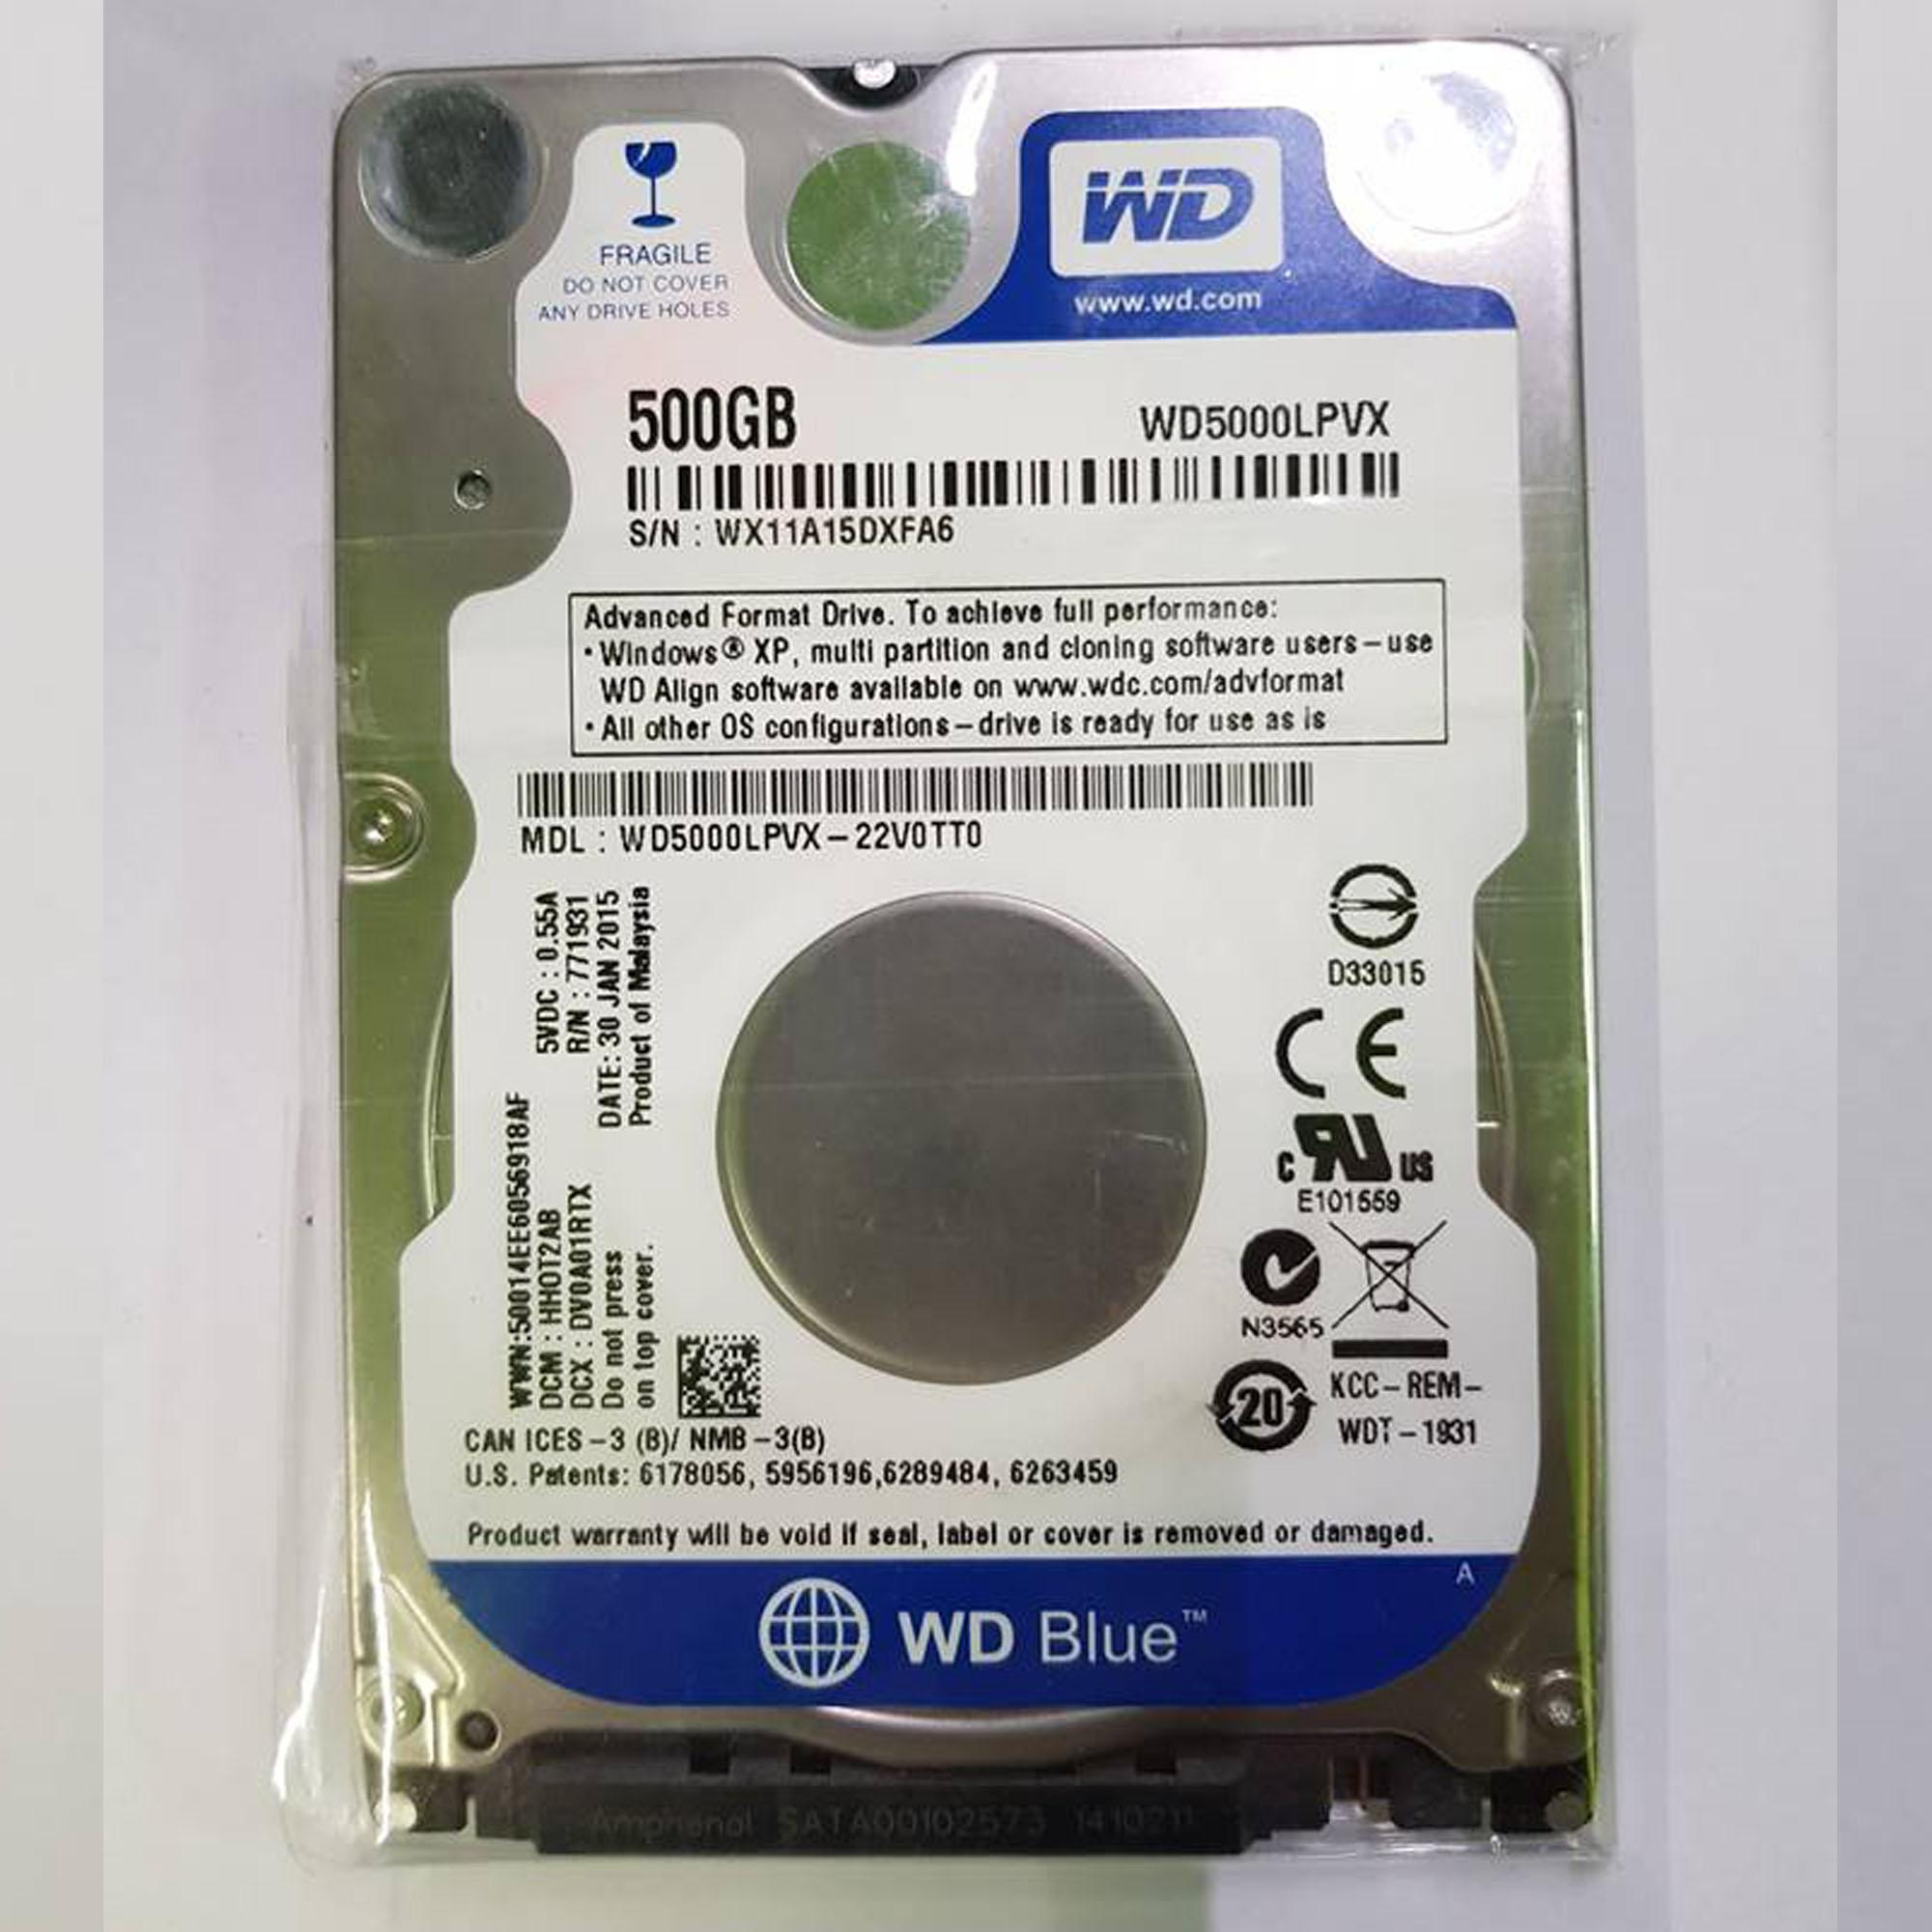 Hdd For Sale Hard Disk Drives Prices Brands Specs In Notebook Ide Interface Cdrom To Usb External Drive Circuit Boardred Wd 500gb Internal Sata Mobile 25 Laptop Refurbished